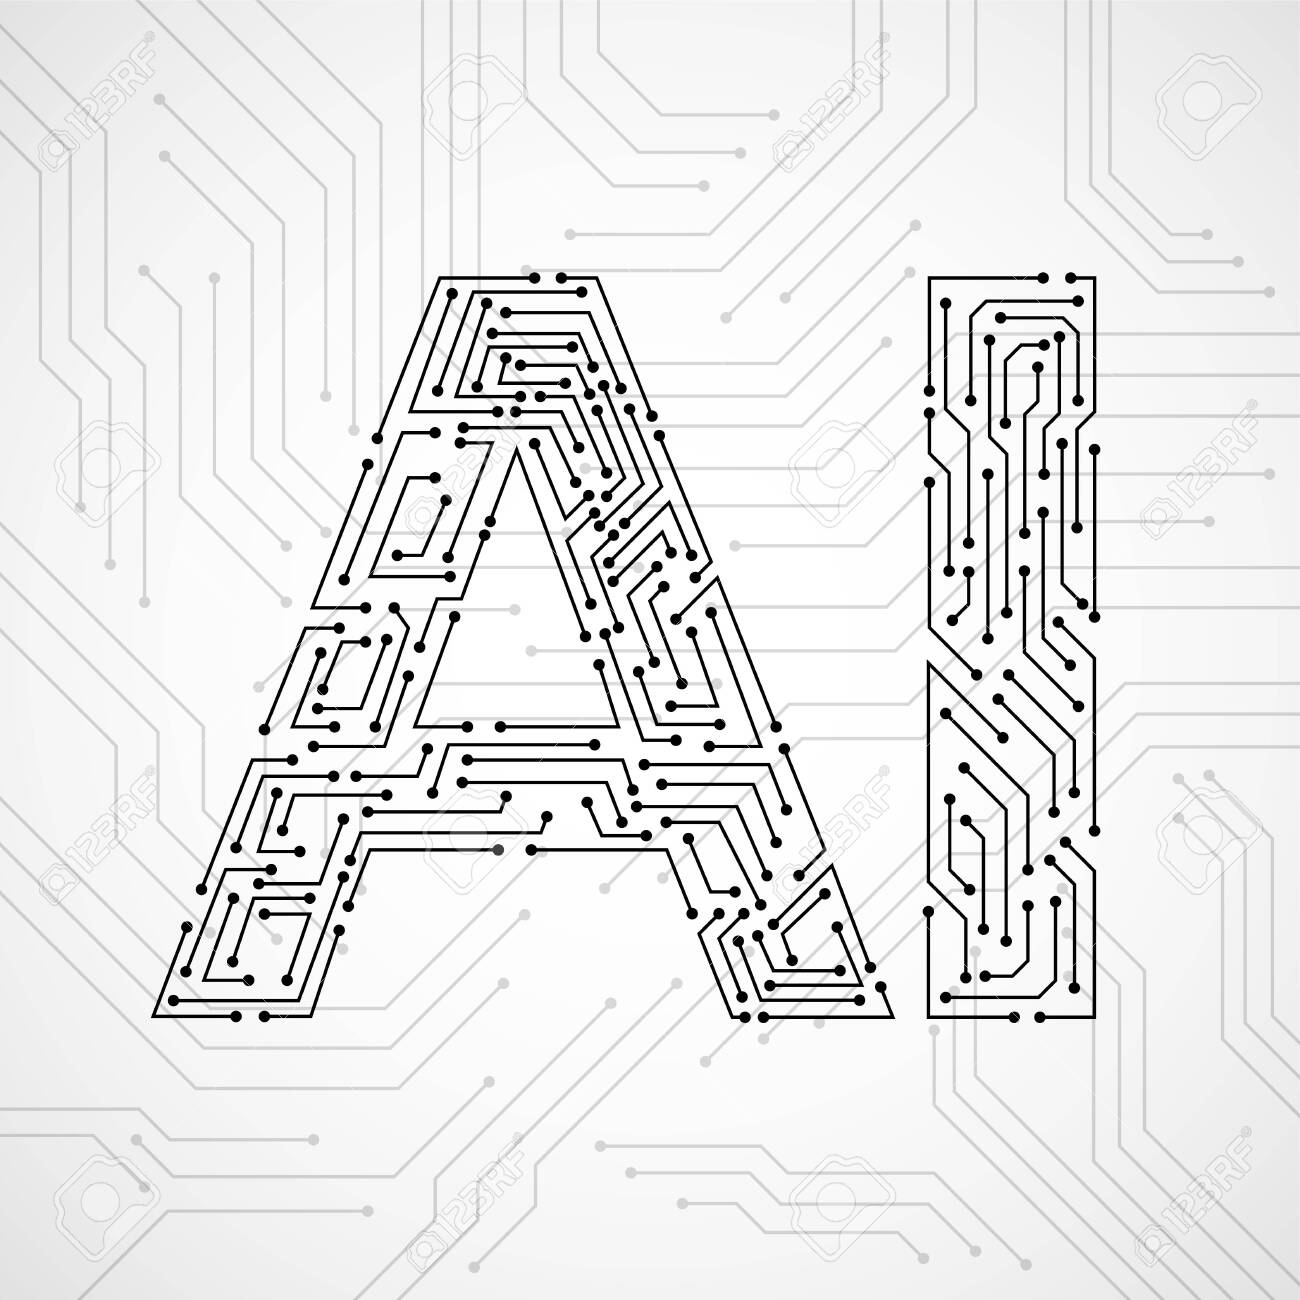 Artificial Intelligence with circuit board isolated on white background. Abstract technology concept. Vector illustration - 135623080